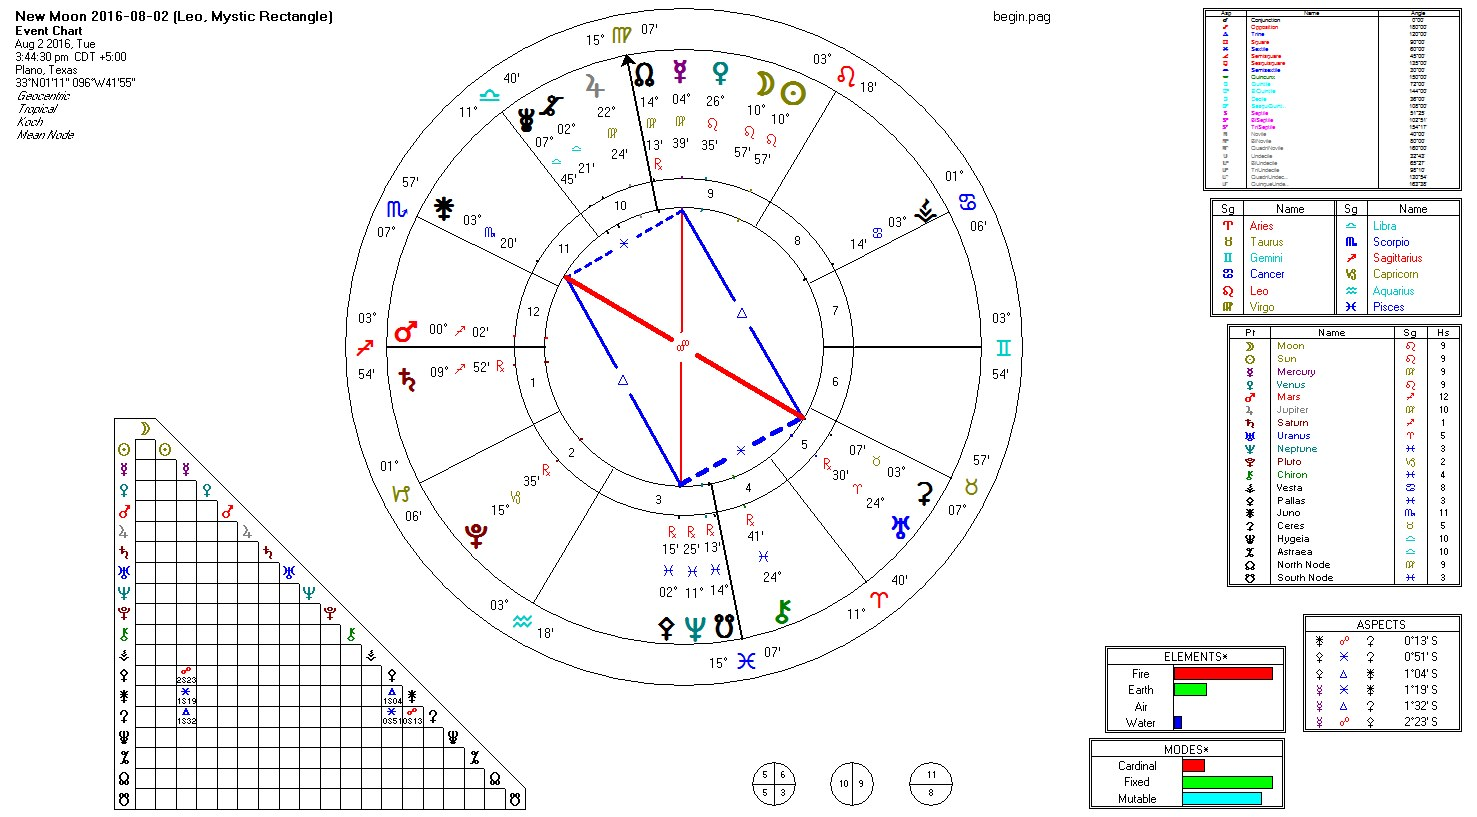 2016-08-02 New Moon (Leo, Mystic Rectangle).jpg